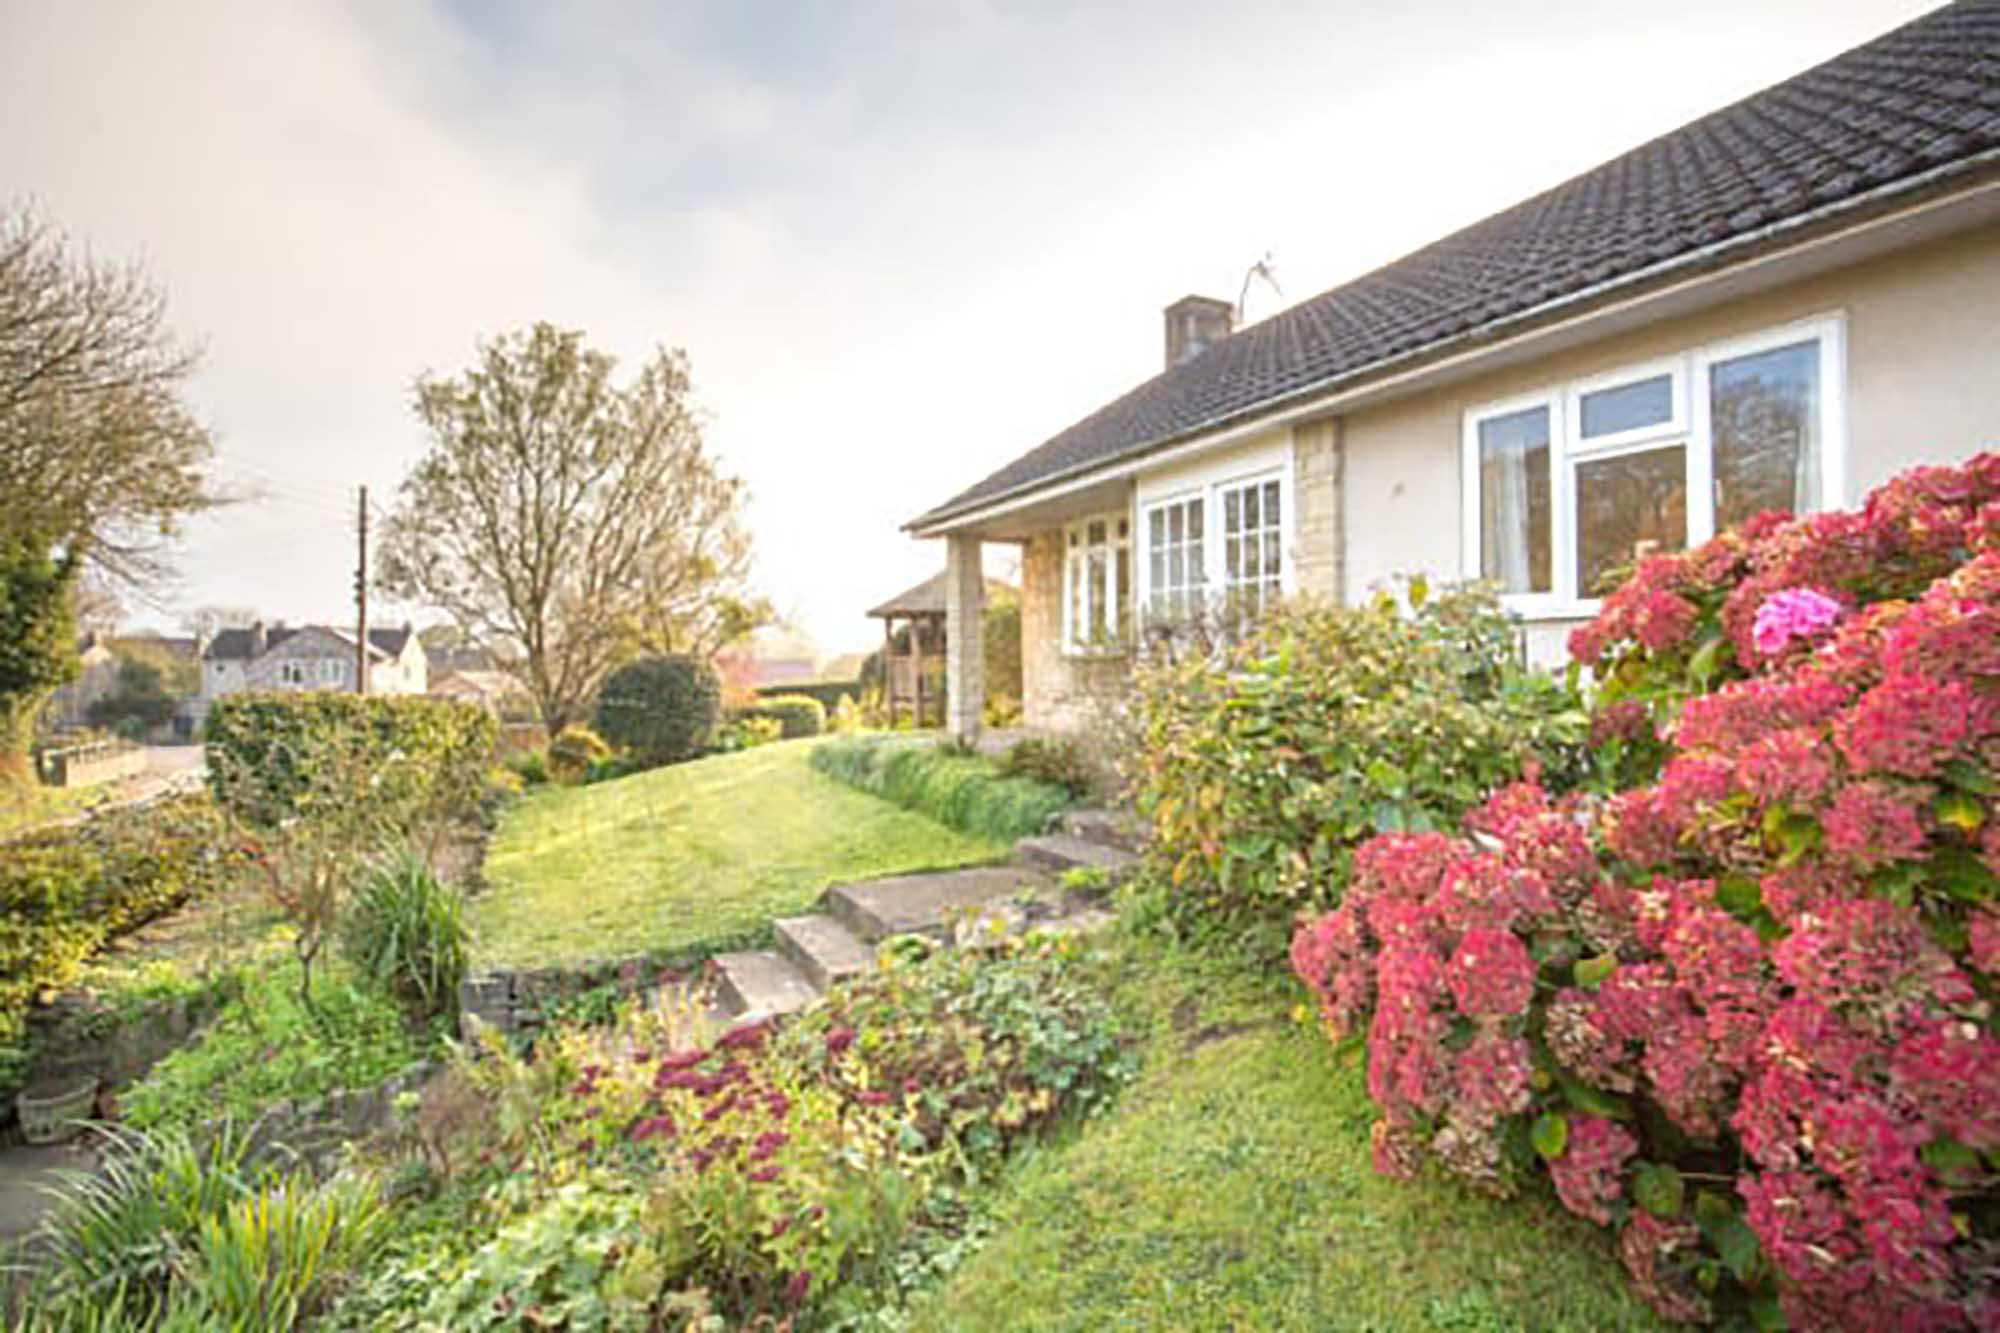 Ditcheat – Bungalow with good view